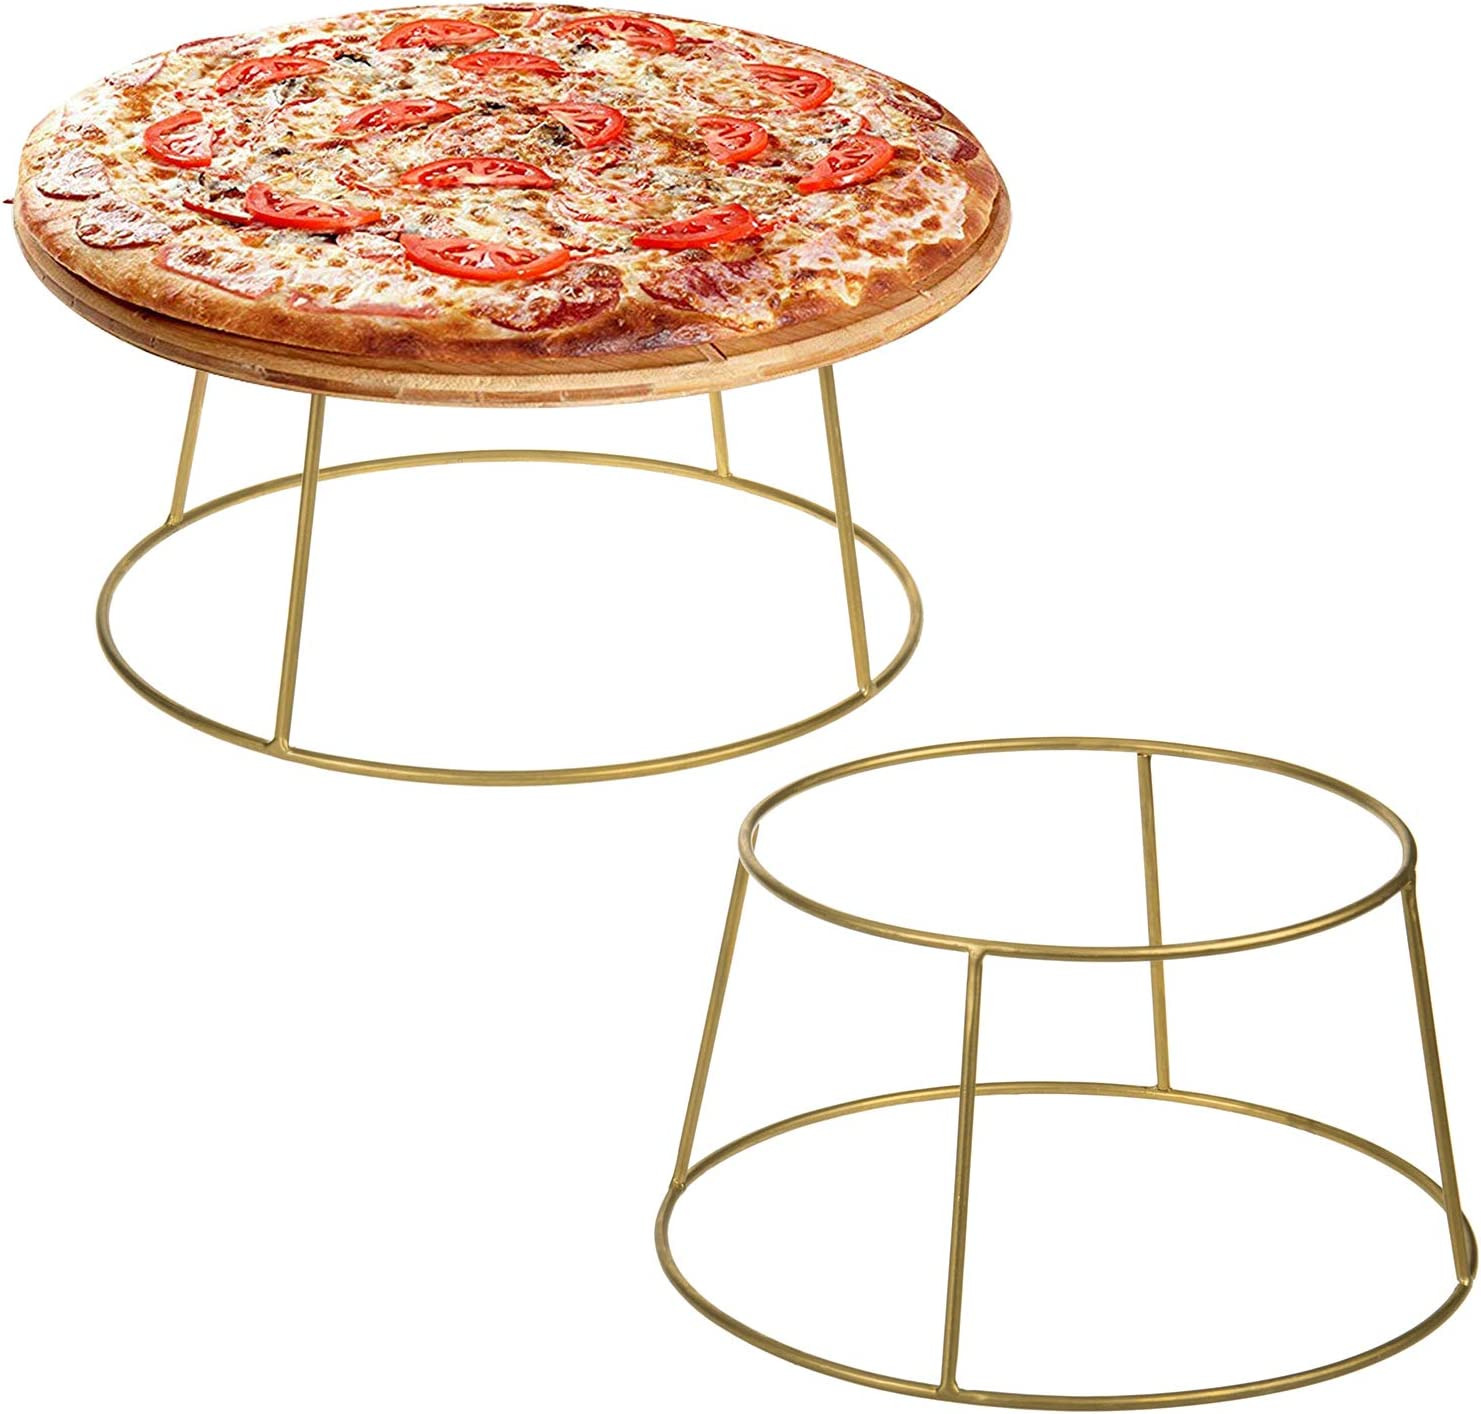 MyGift Brass-Tone Wire Metal Pizza Pan Risers/Food Display Stand, Set of 2